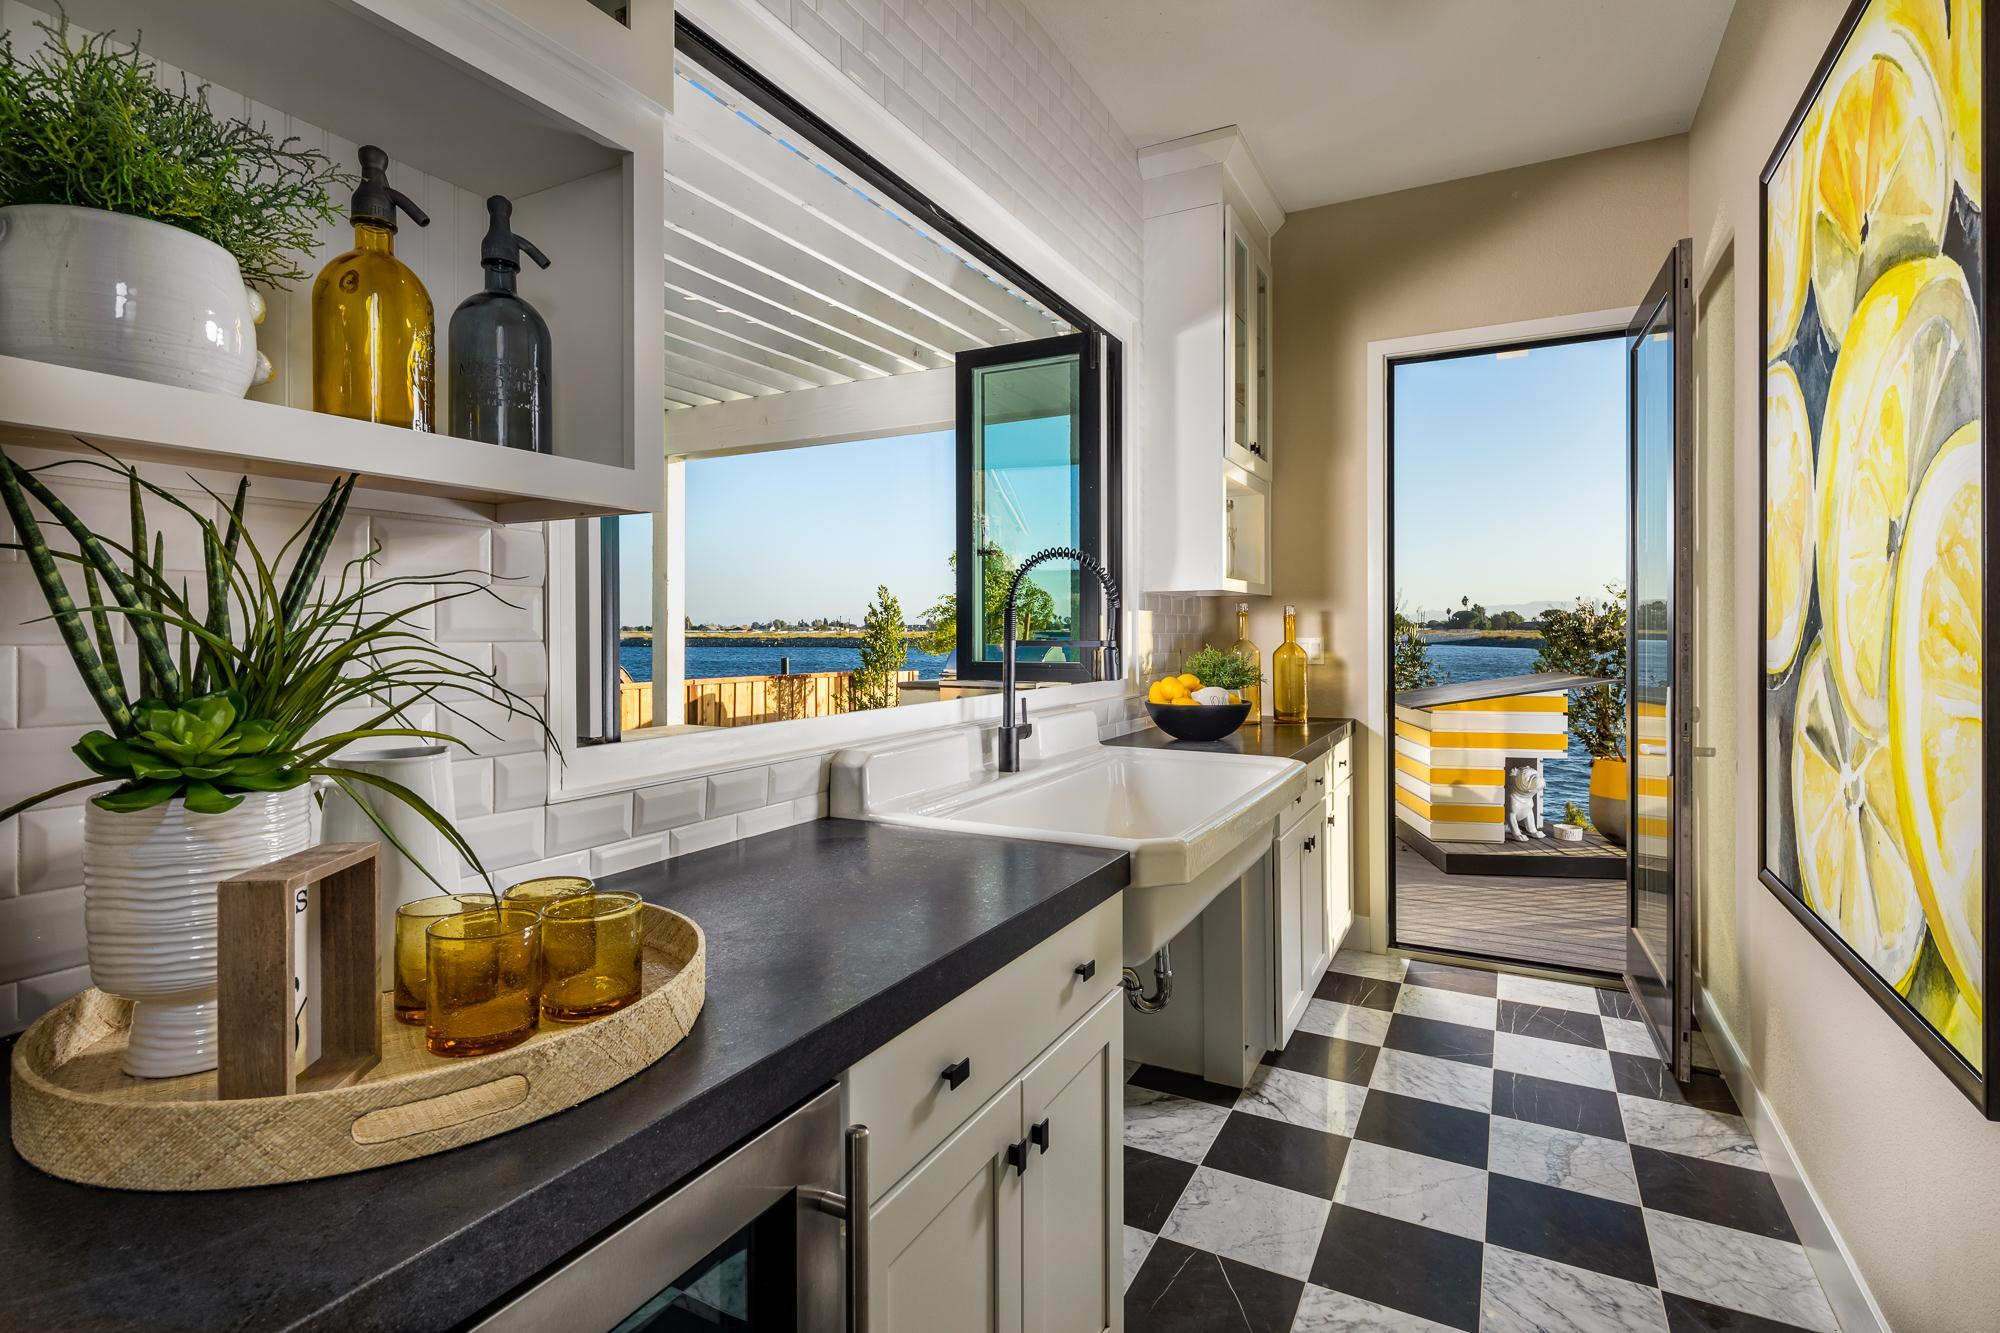 Bathroom featured in The Edgewater By Davidson Communities in Oakland-Alameda, CA